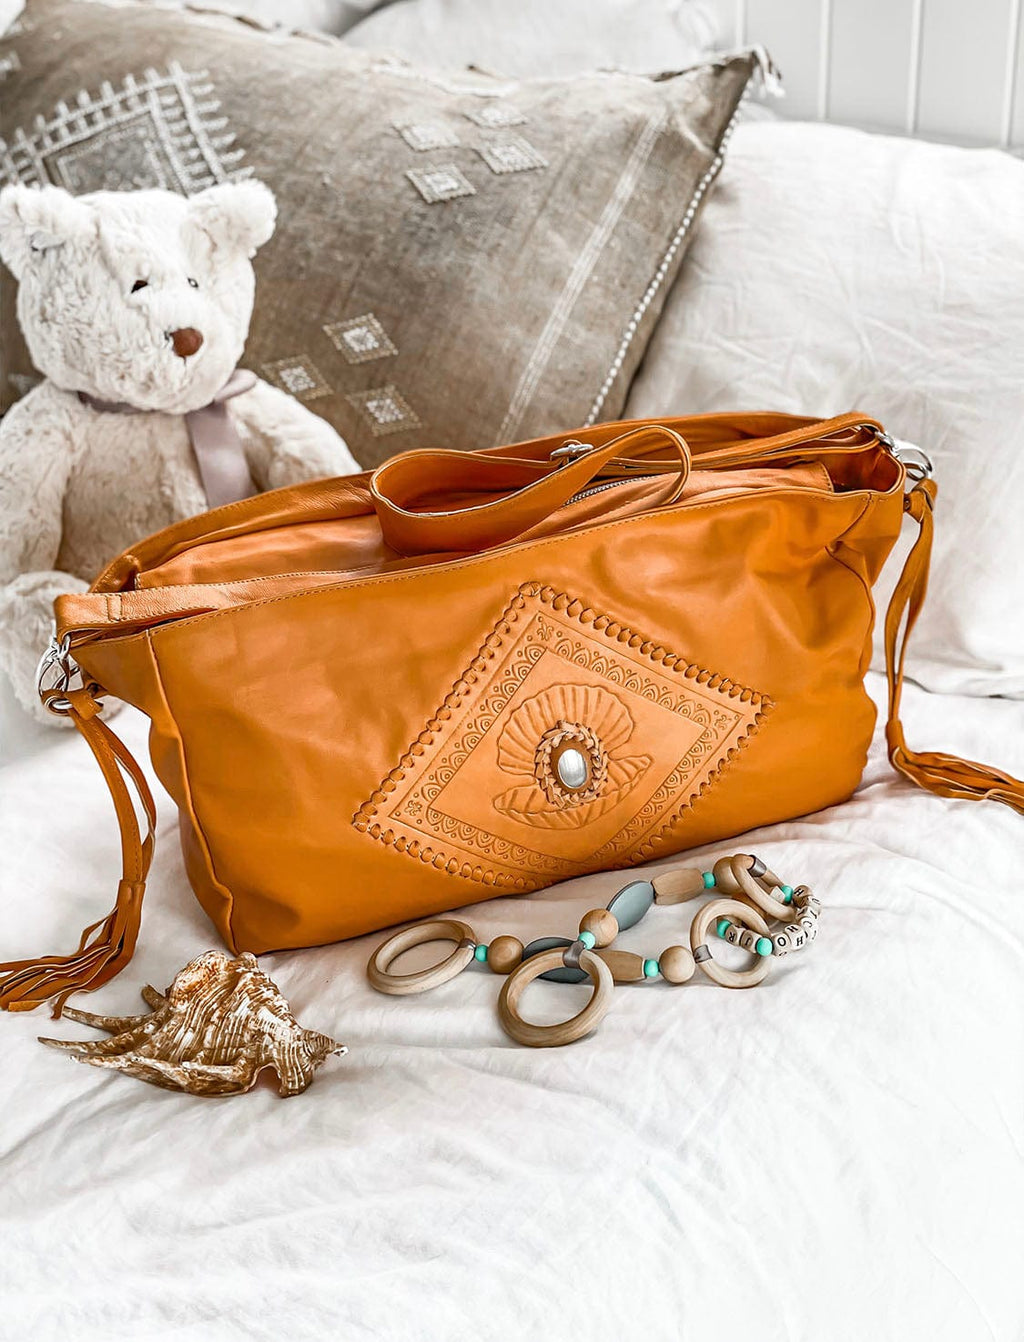 Isla Pearl Leather Baby Bag